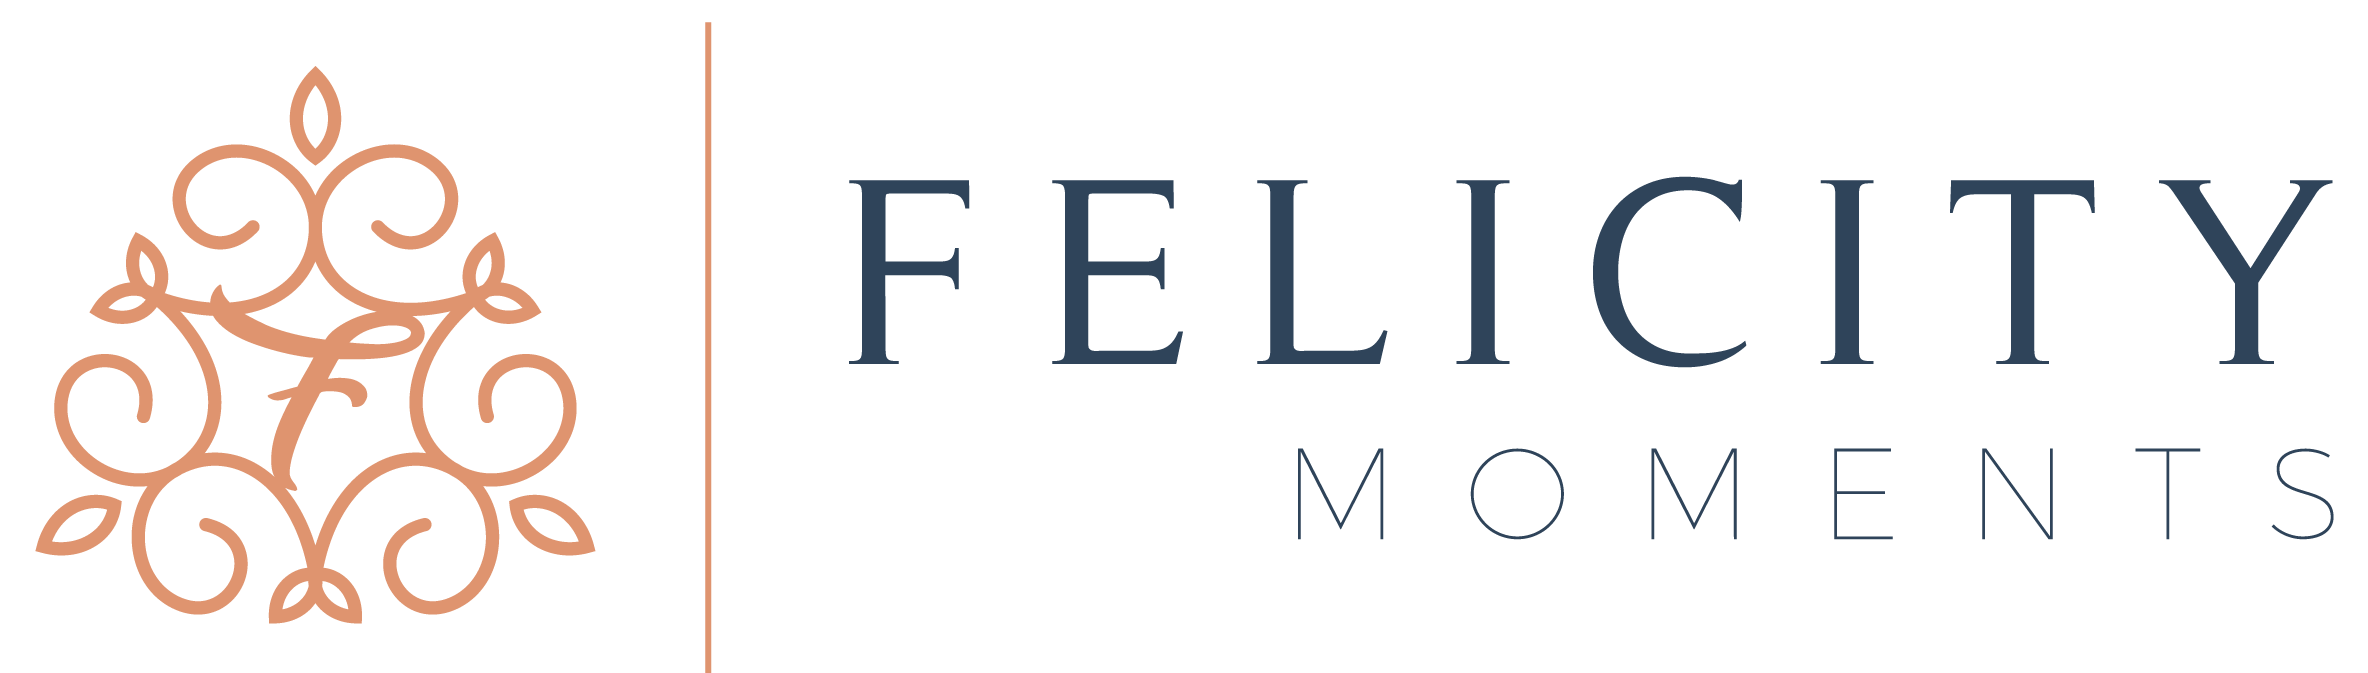 Felicity Moments | Hand-Crafted Luxury Wedding Cinematography | #FelicityMoments